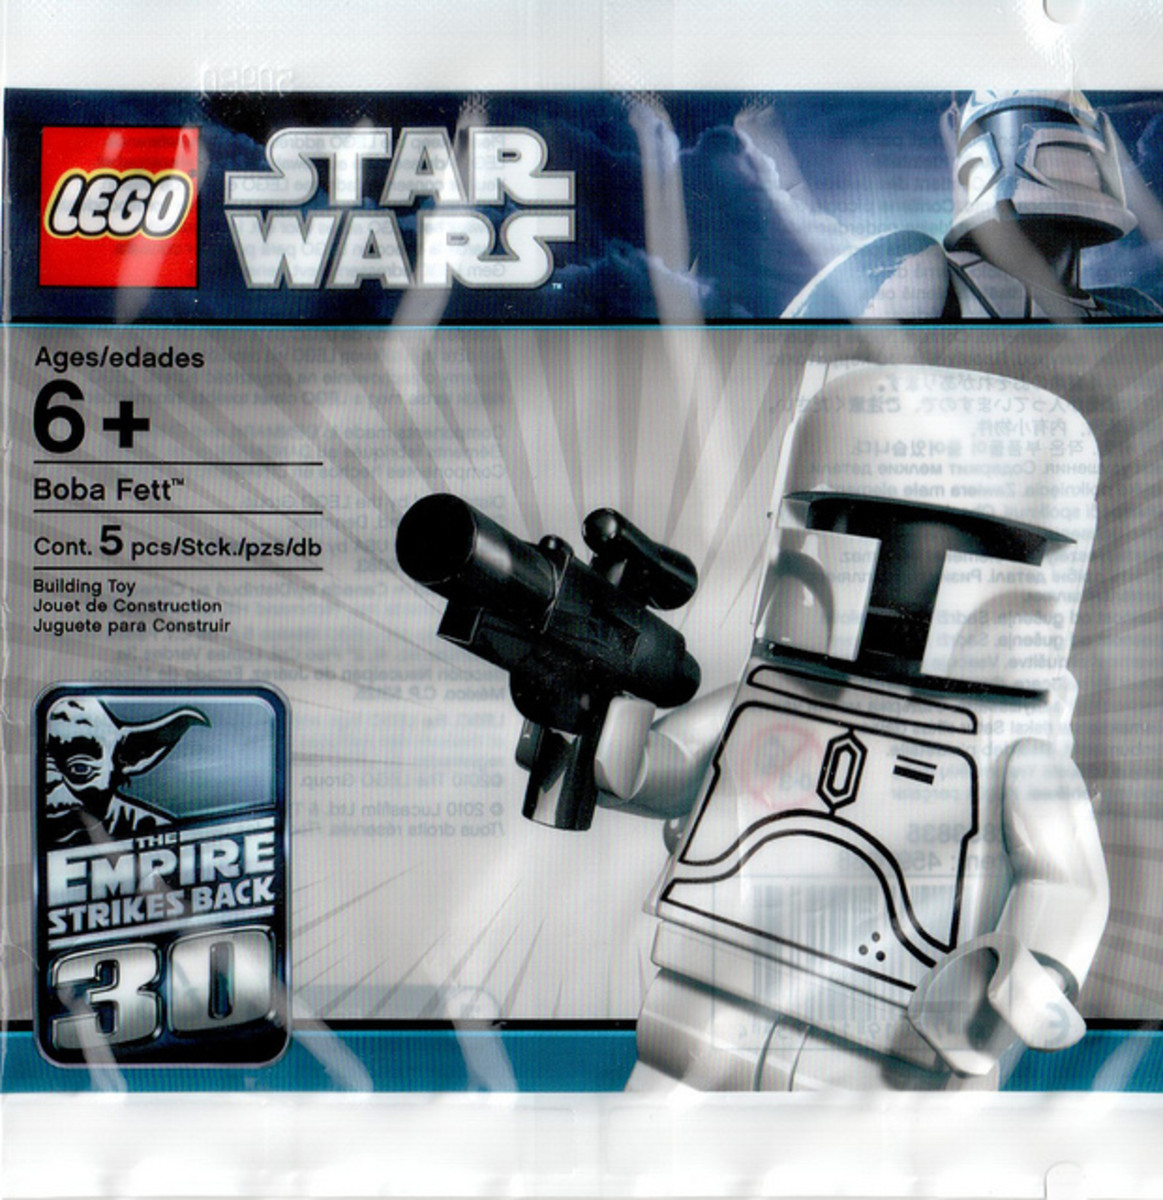 LEGO Star Wars White Boba Fett Minifigure 2853835 Bag